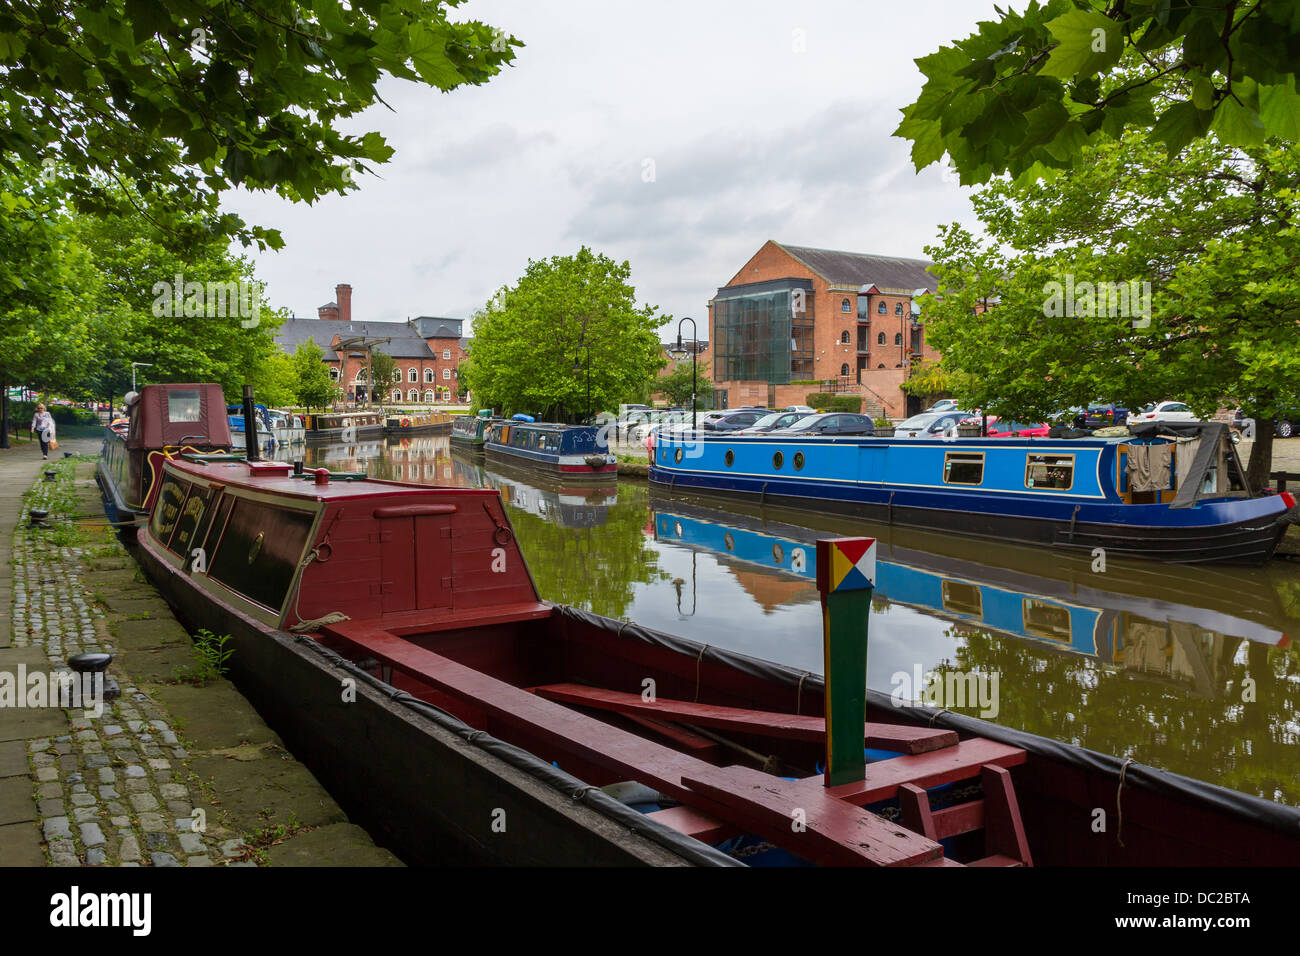 Canal boats moored up in the Castlefield are of Manchester, England. - Stock Image